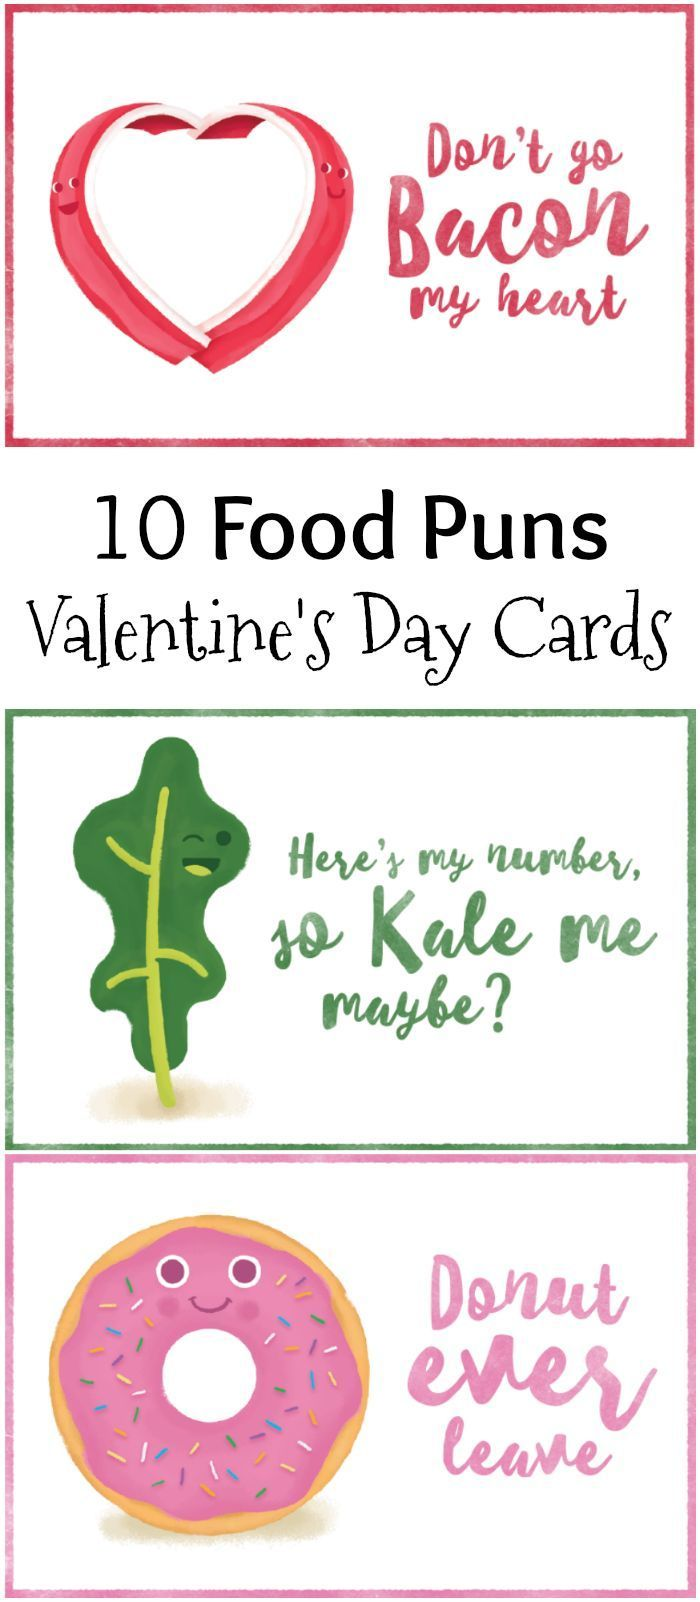 These 10 Food Pun Valentine's Day Cards are to make your